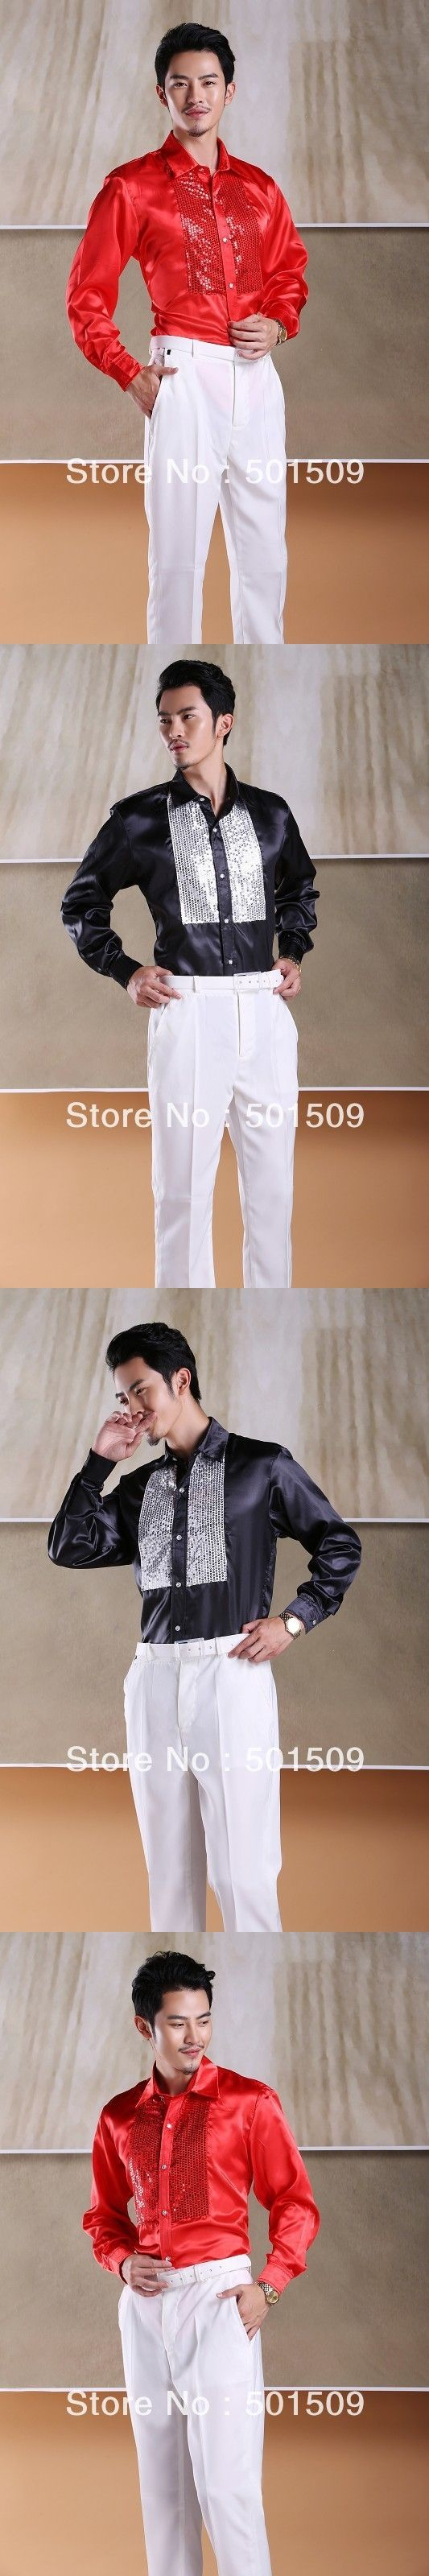 Free shipping prince stage sequins decoration mens tuxedo shirts party/event shirts latin dance performance shirts